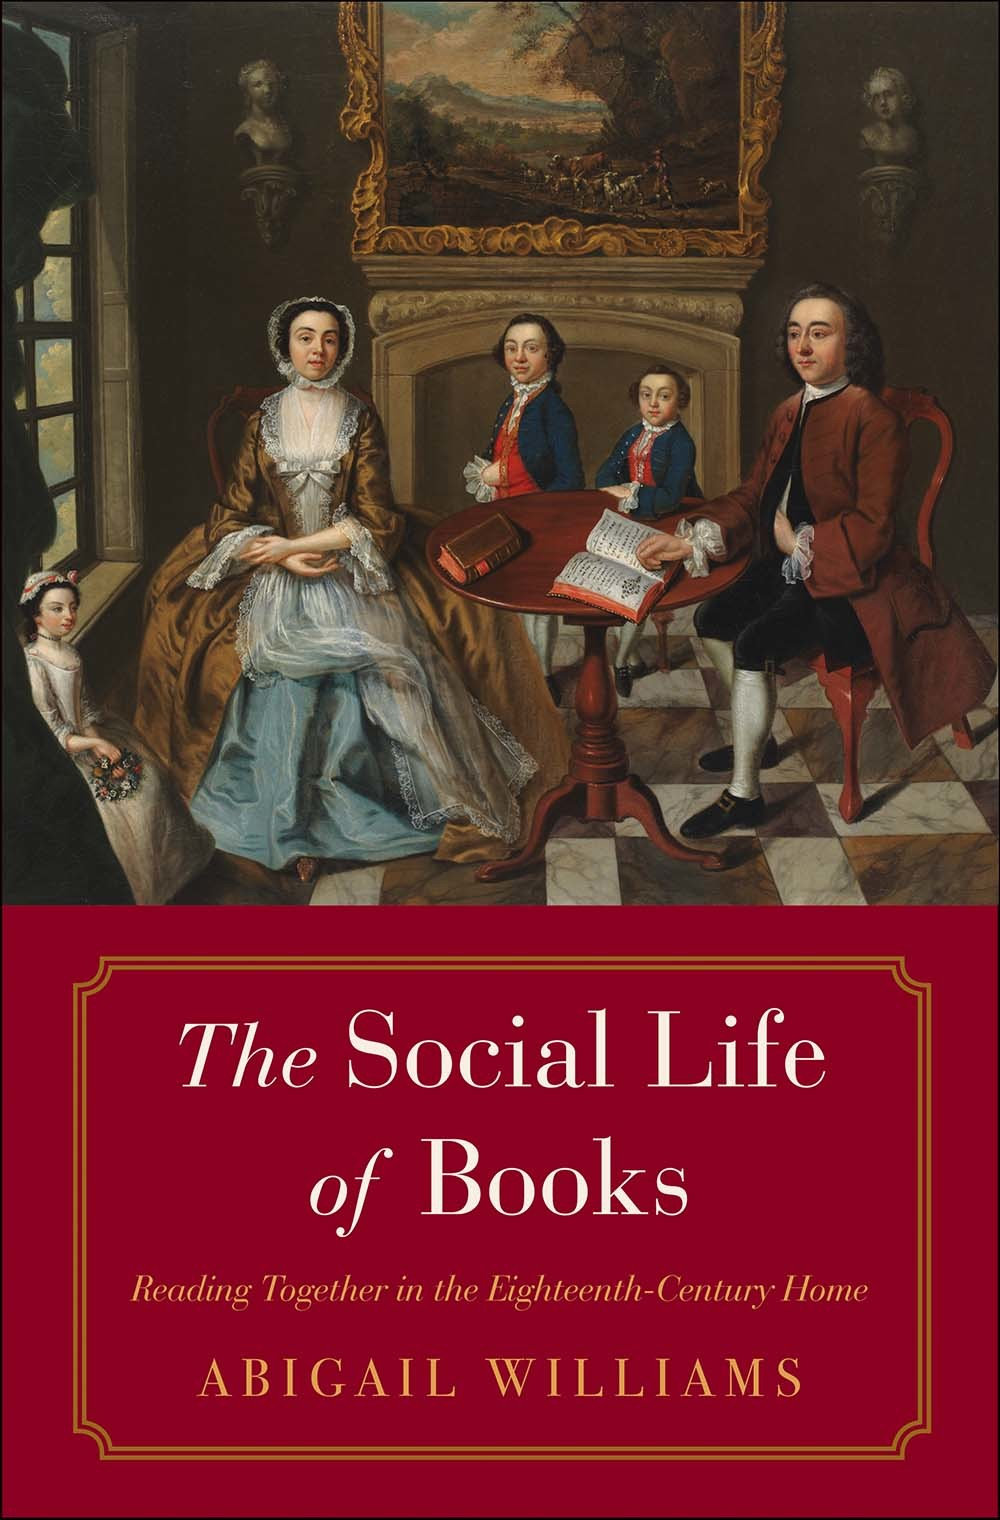 The Social Life of Books Reading Together in the Eighteenth-Century Home